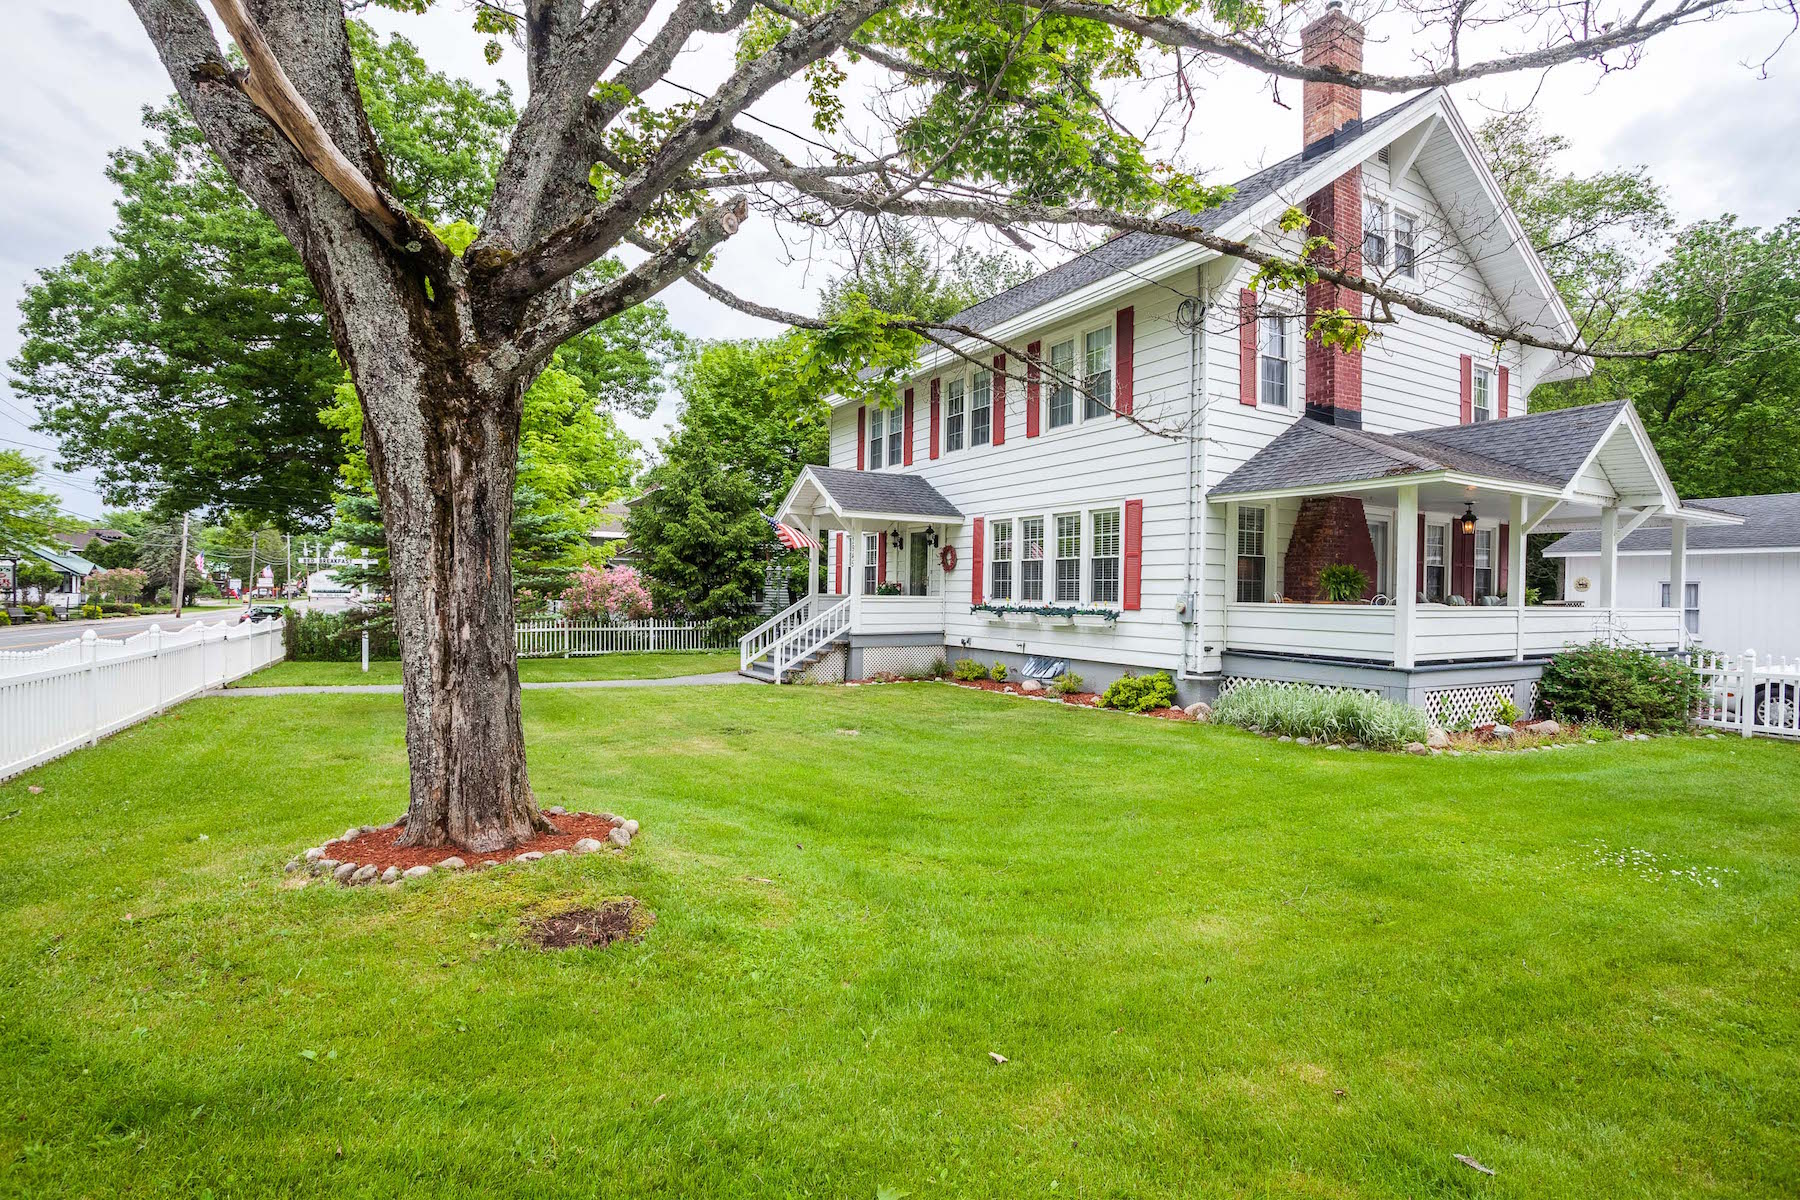 Additional photo for property listing at White House Inn 2945  New York 28 Old Forge, Nueva York 13420 Estados Unidos